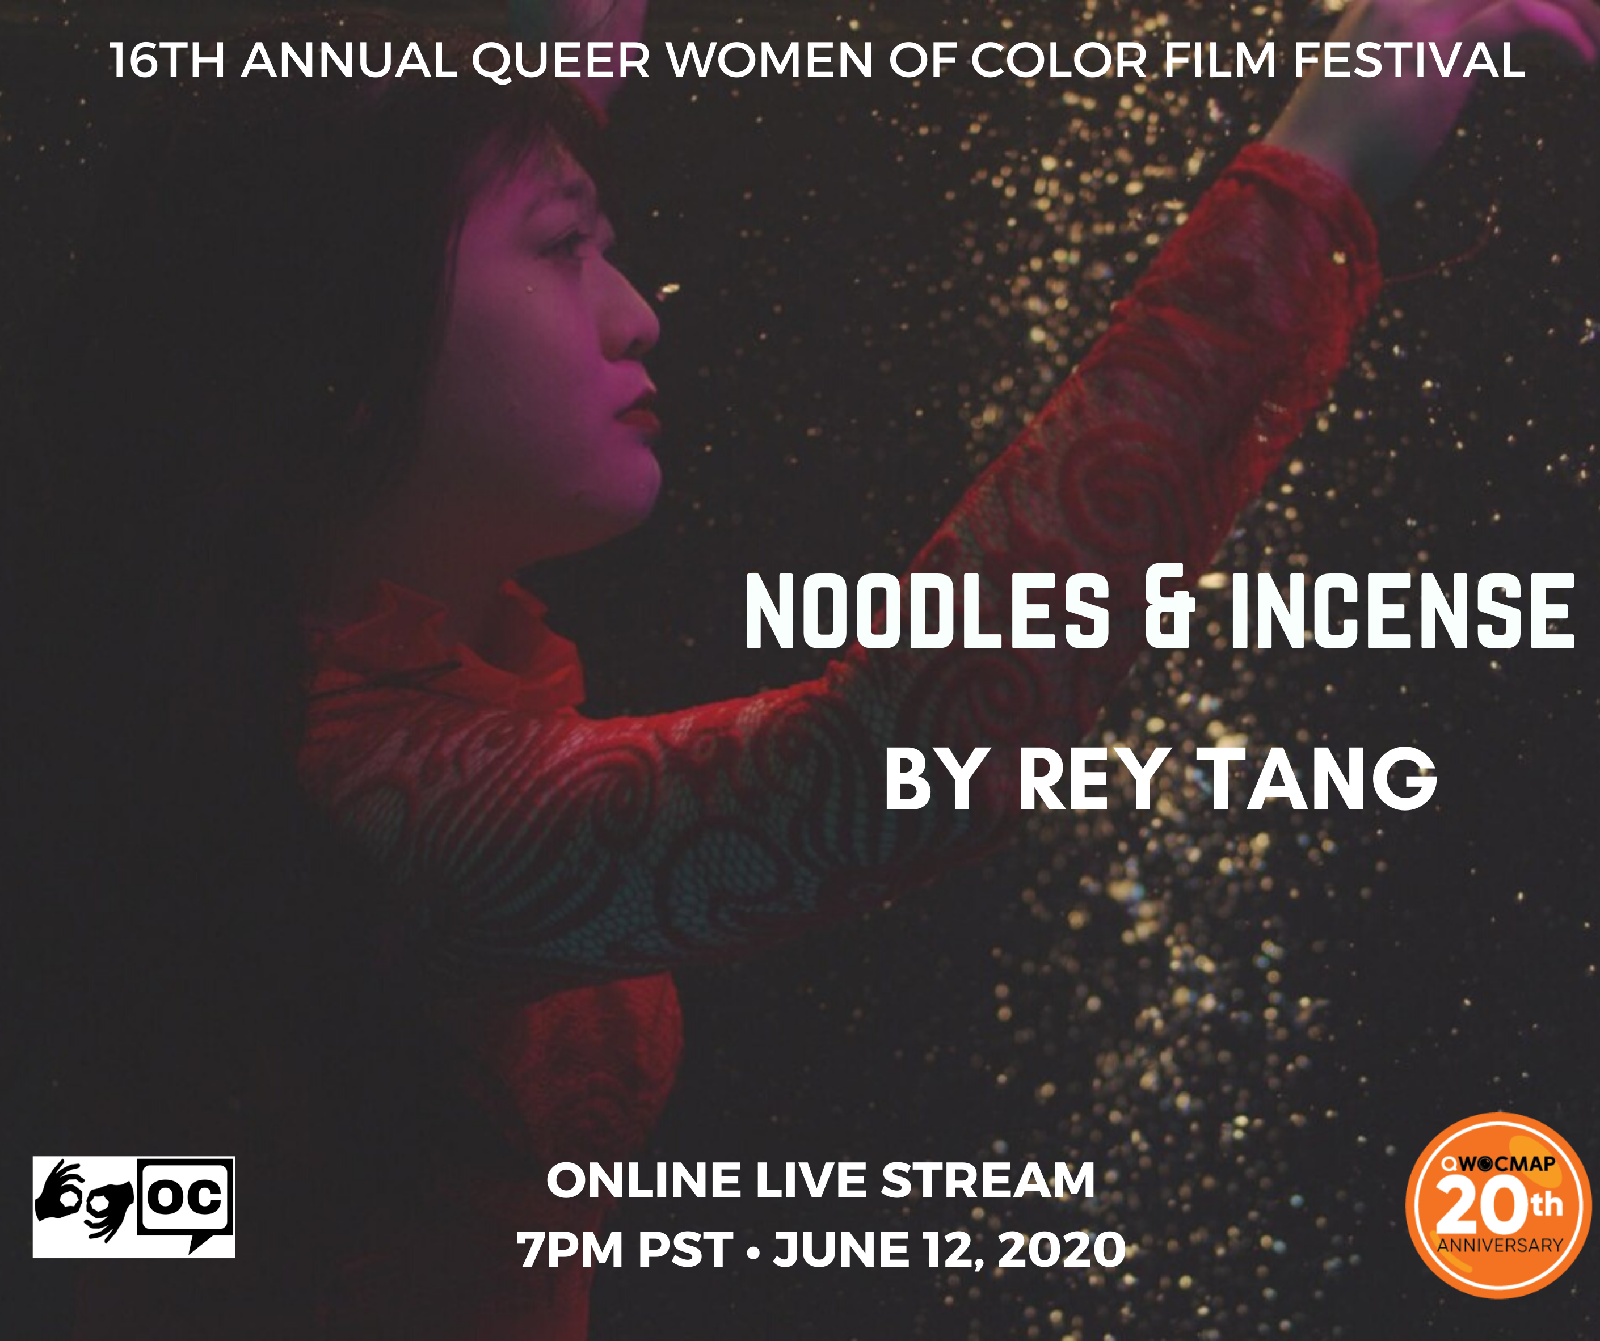 An Asian American woman with light brown skin floats underwater with her arms above her head, looking thoughtfully to her right.The top of the image reads 16th Annual Queer Women of Color Film Festival.Text below reads NOODLES & INCENSE by Rey Tang. The QWOCMAP logo is on the bottom right and the ASL and open captions logo are on the bottom right. Text below reads ONLINE LIVE STREAM 7PM PST JUNE 12, 2020.